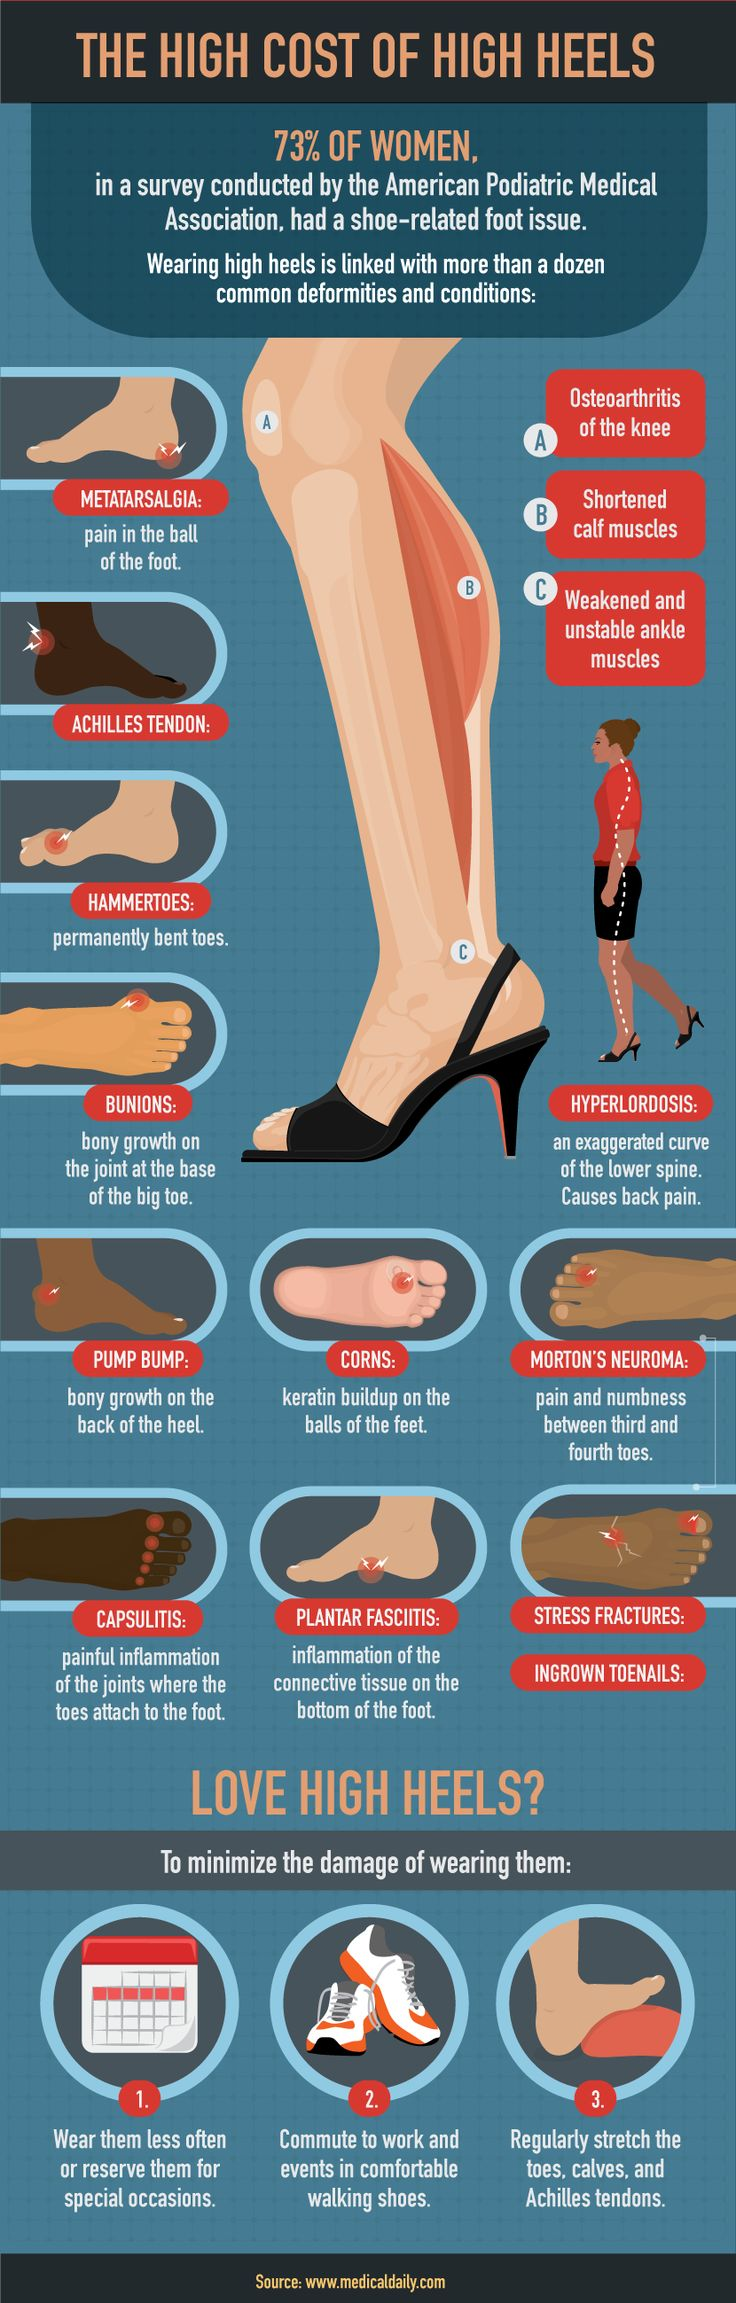 Cost of High Heels - How to Treat Your Feet